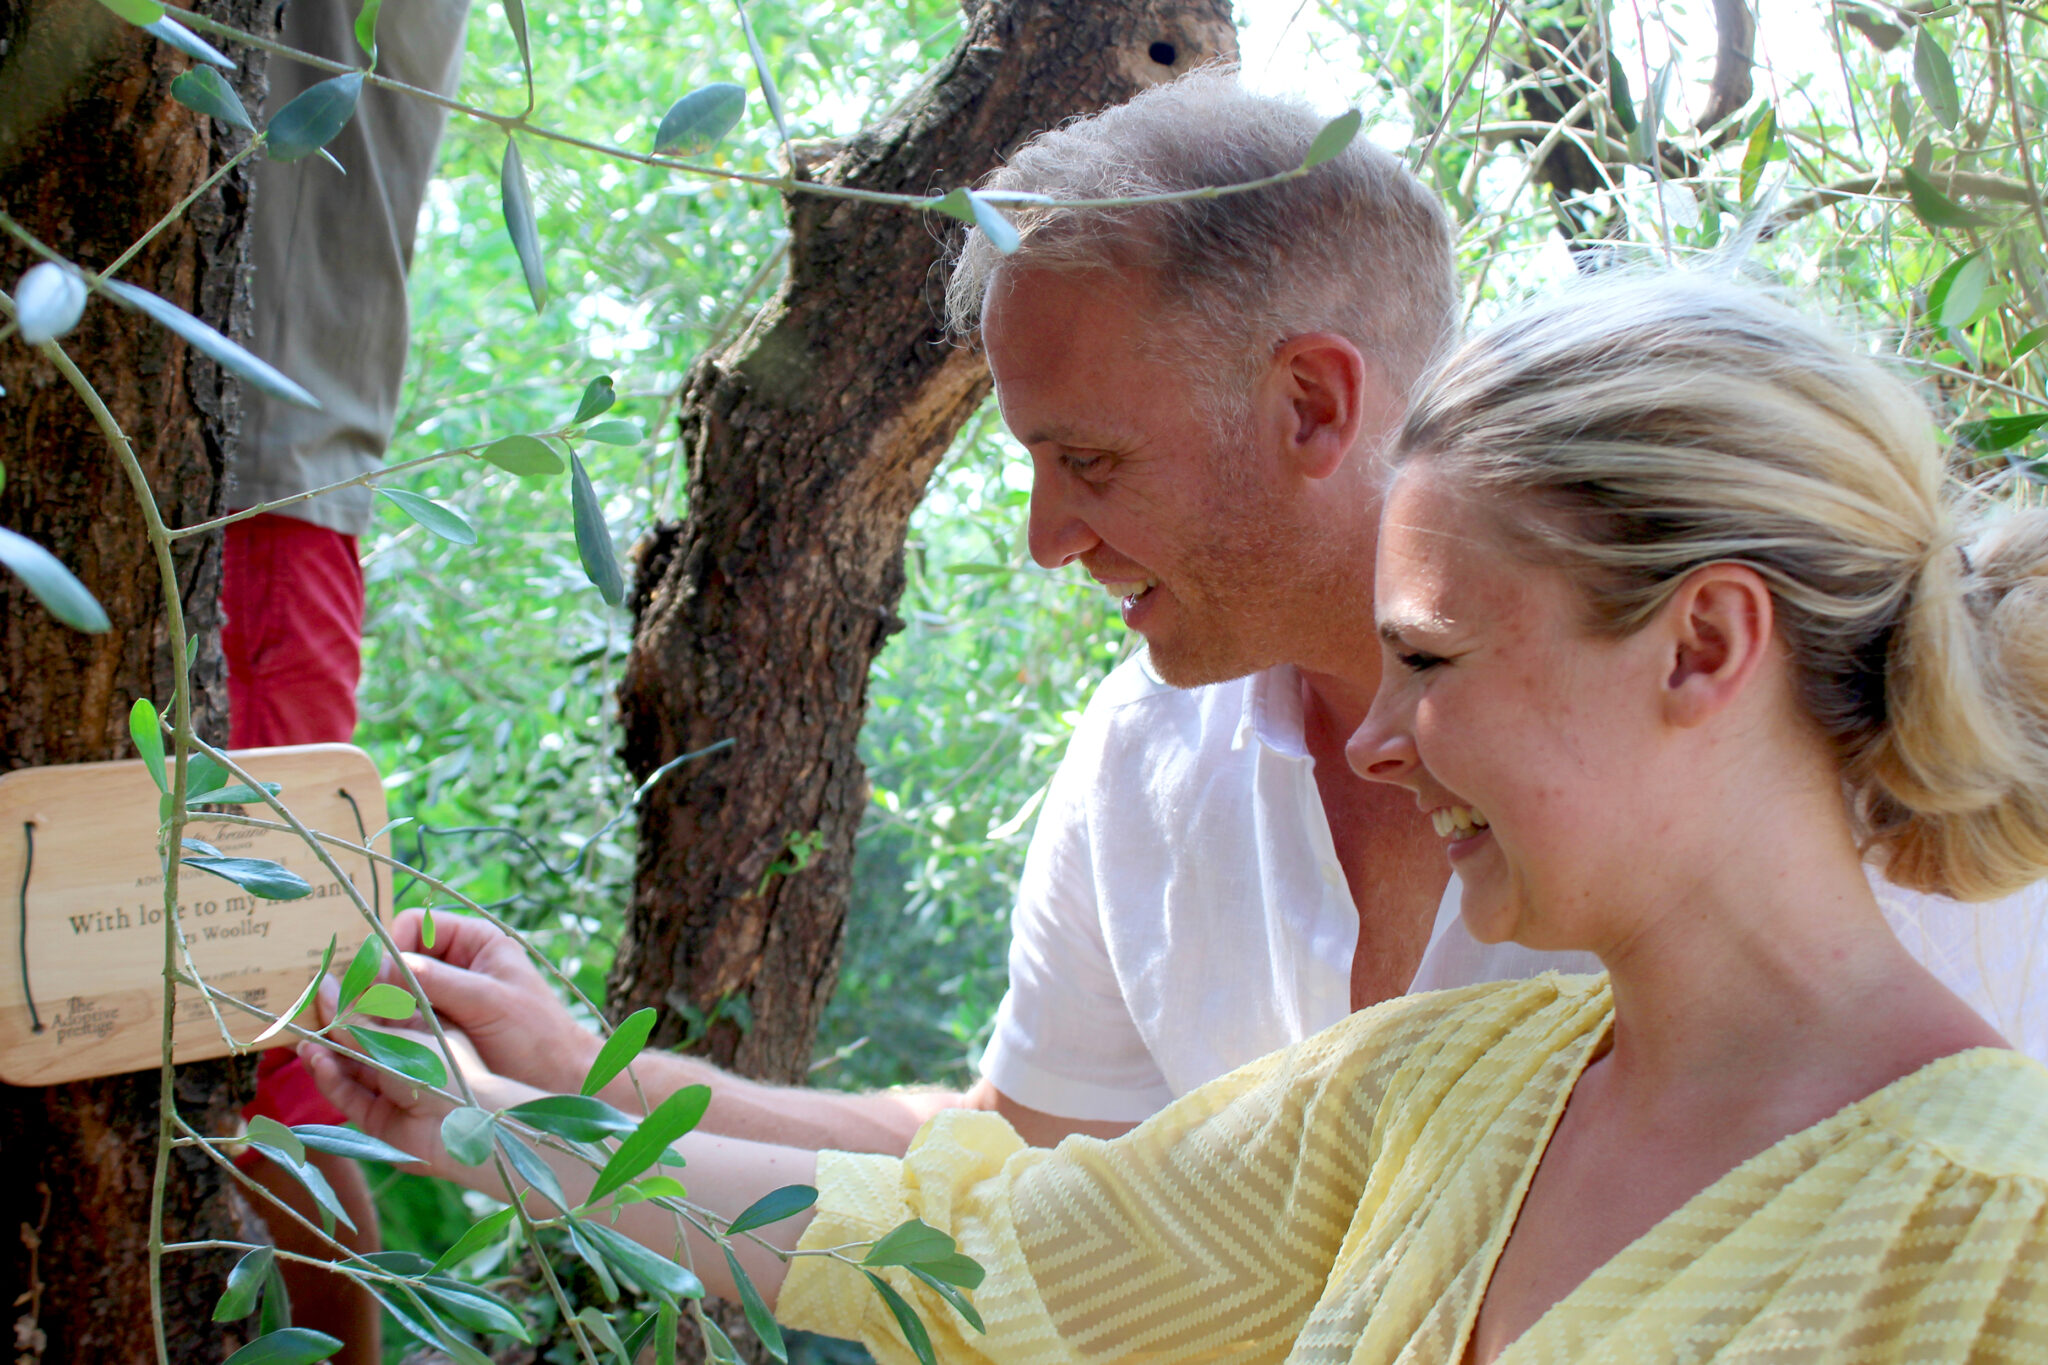 Adopt an Olive Tree – A gift for those you love and for Nature